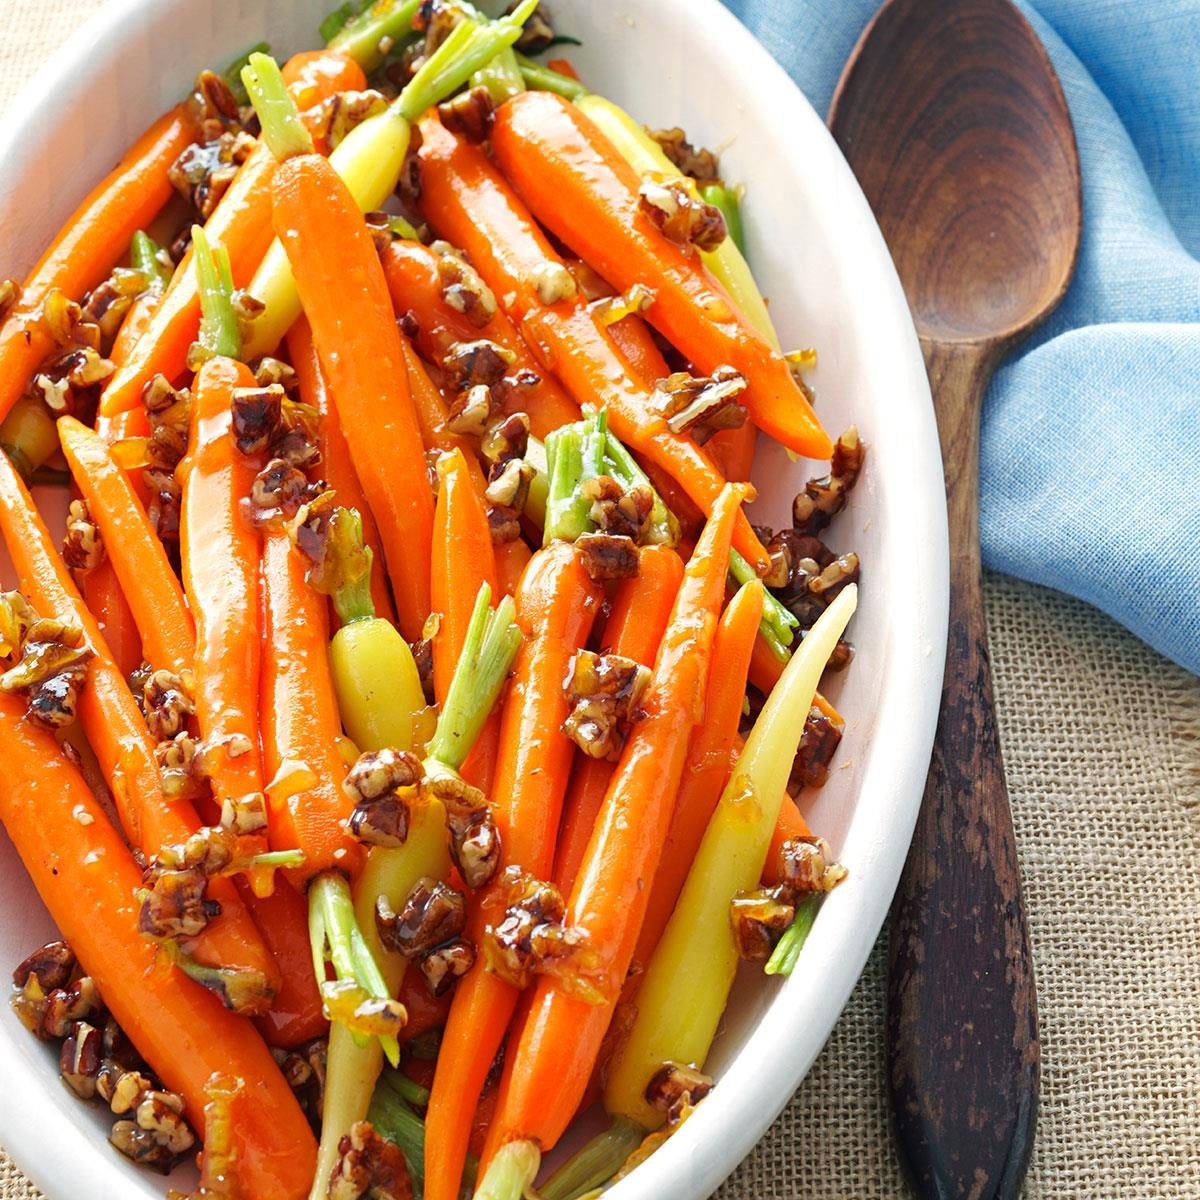 Our Most Delicious Carrot Recipes